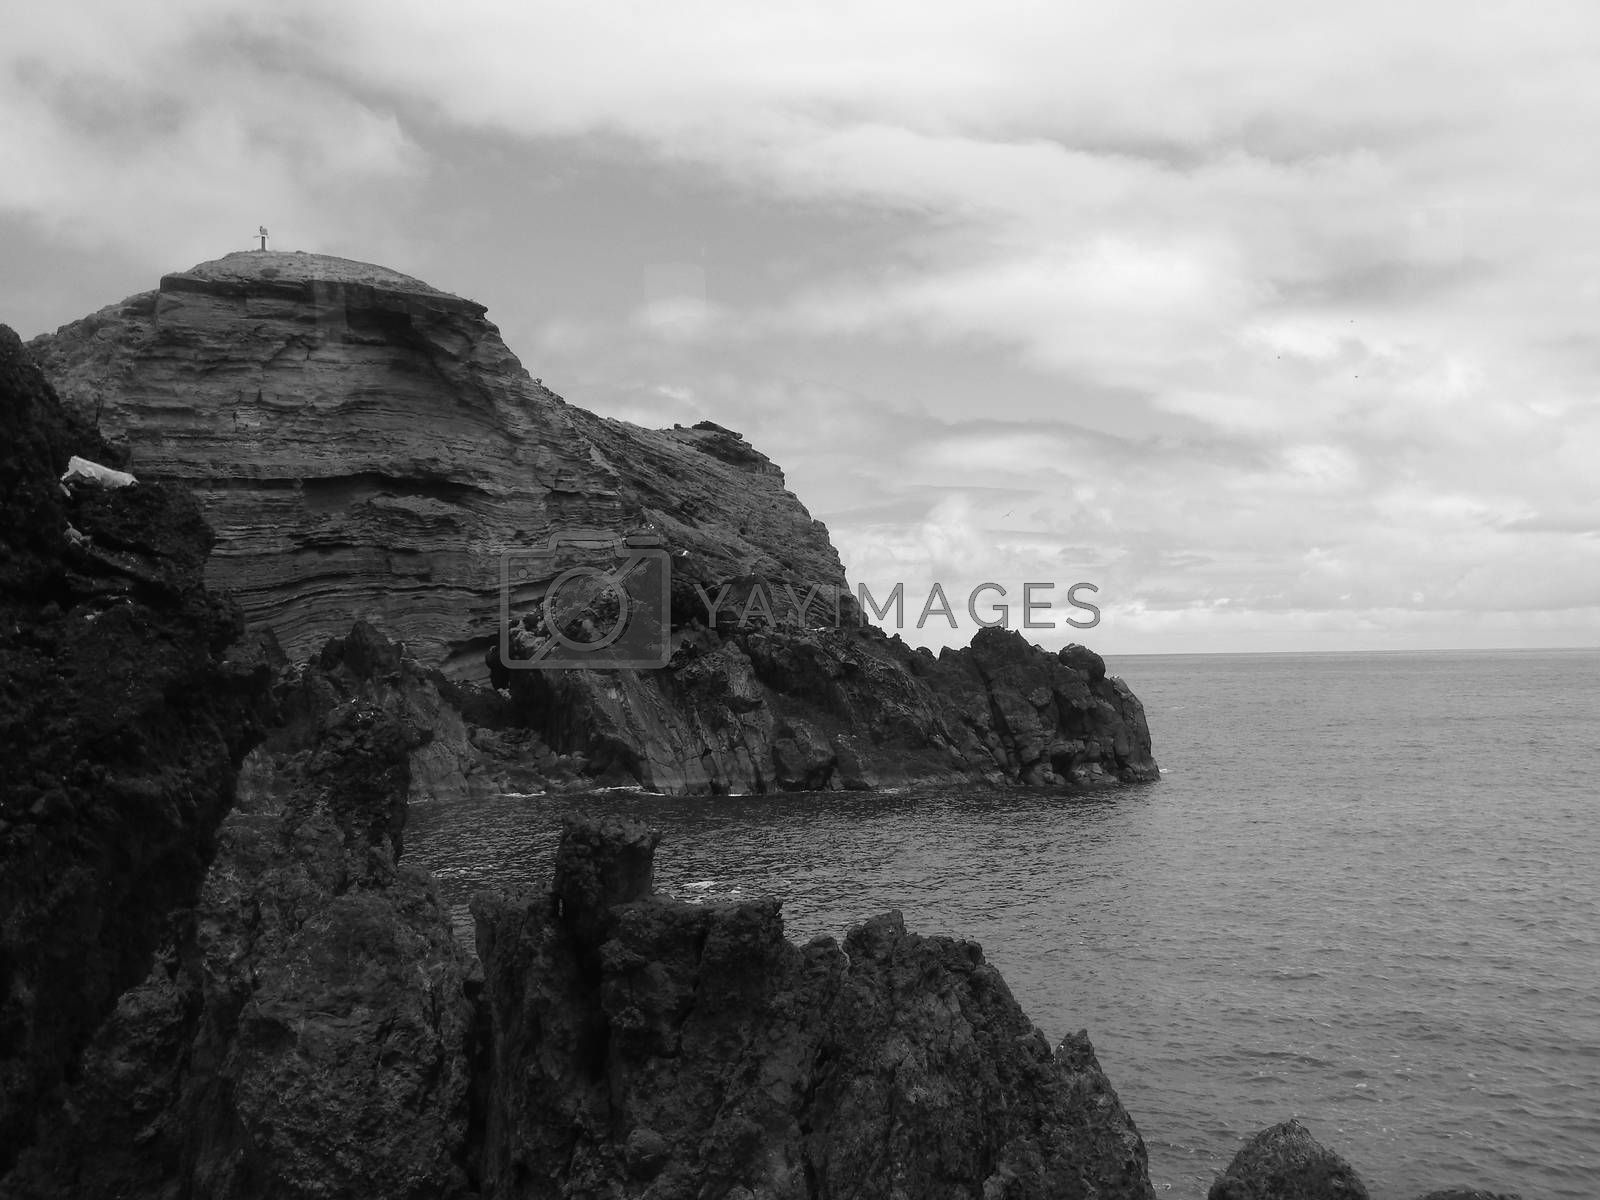 Fantastic views in black and white of the Madeira coast with the blue sea and the volcanic rock